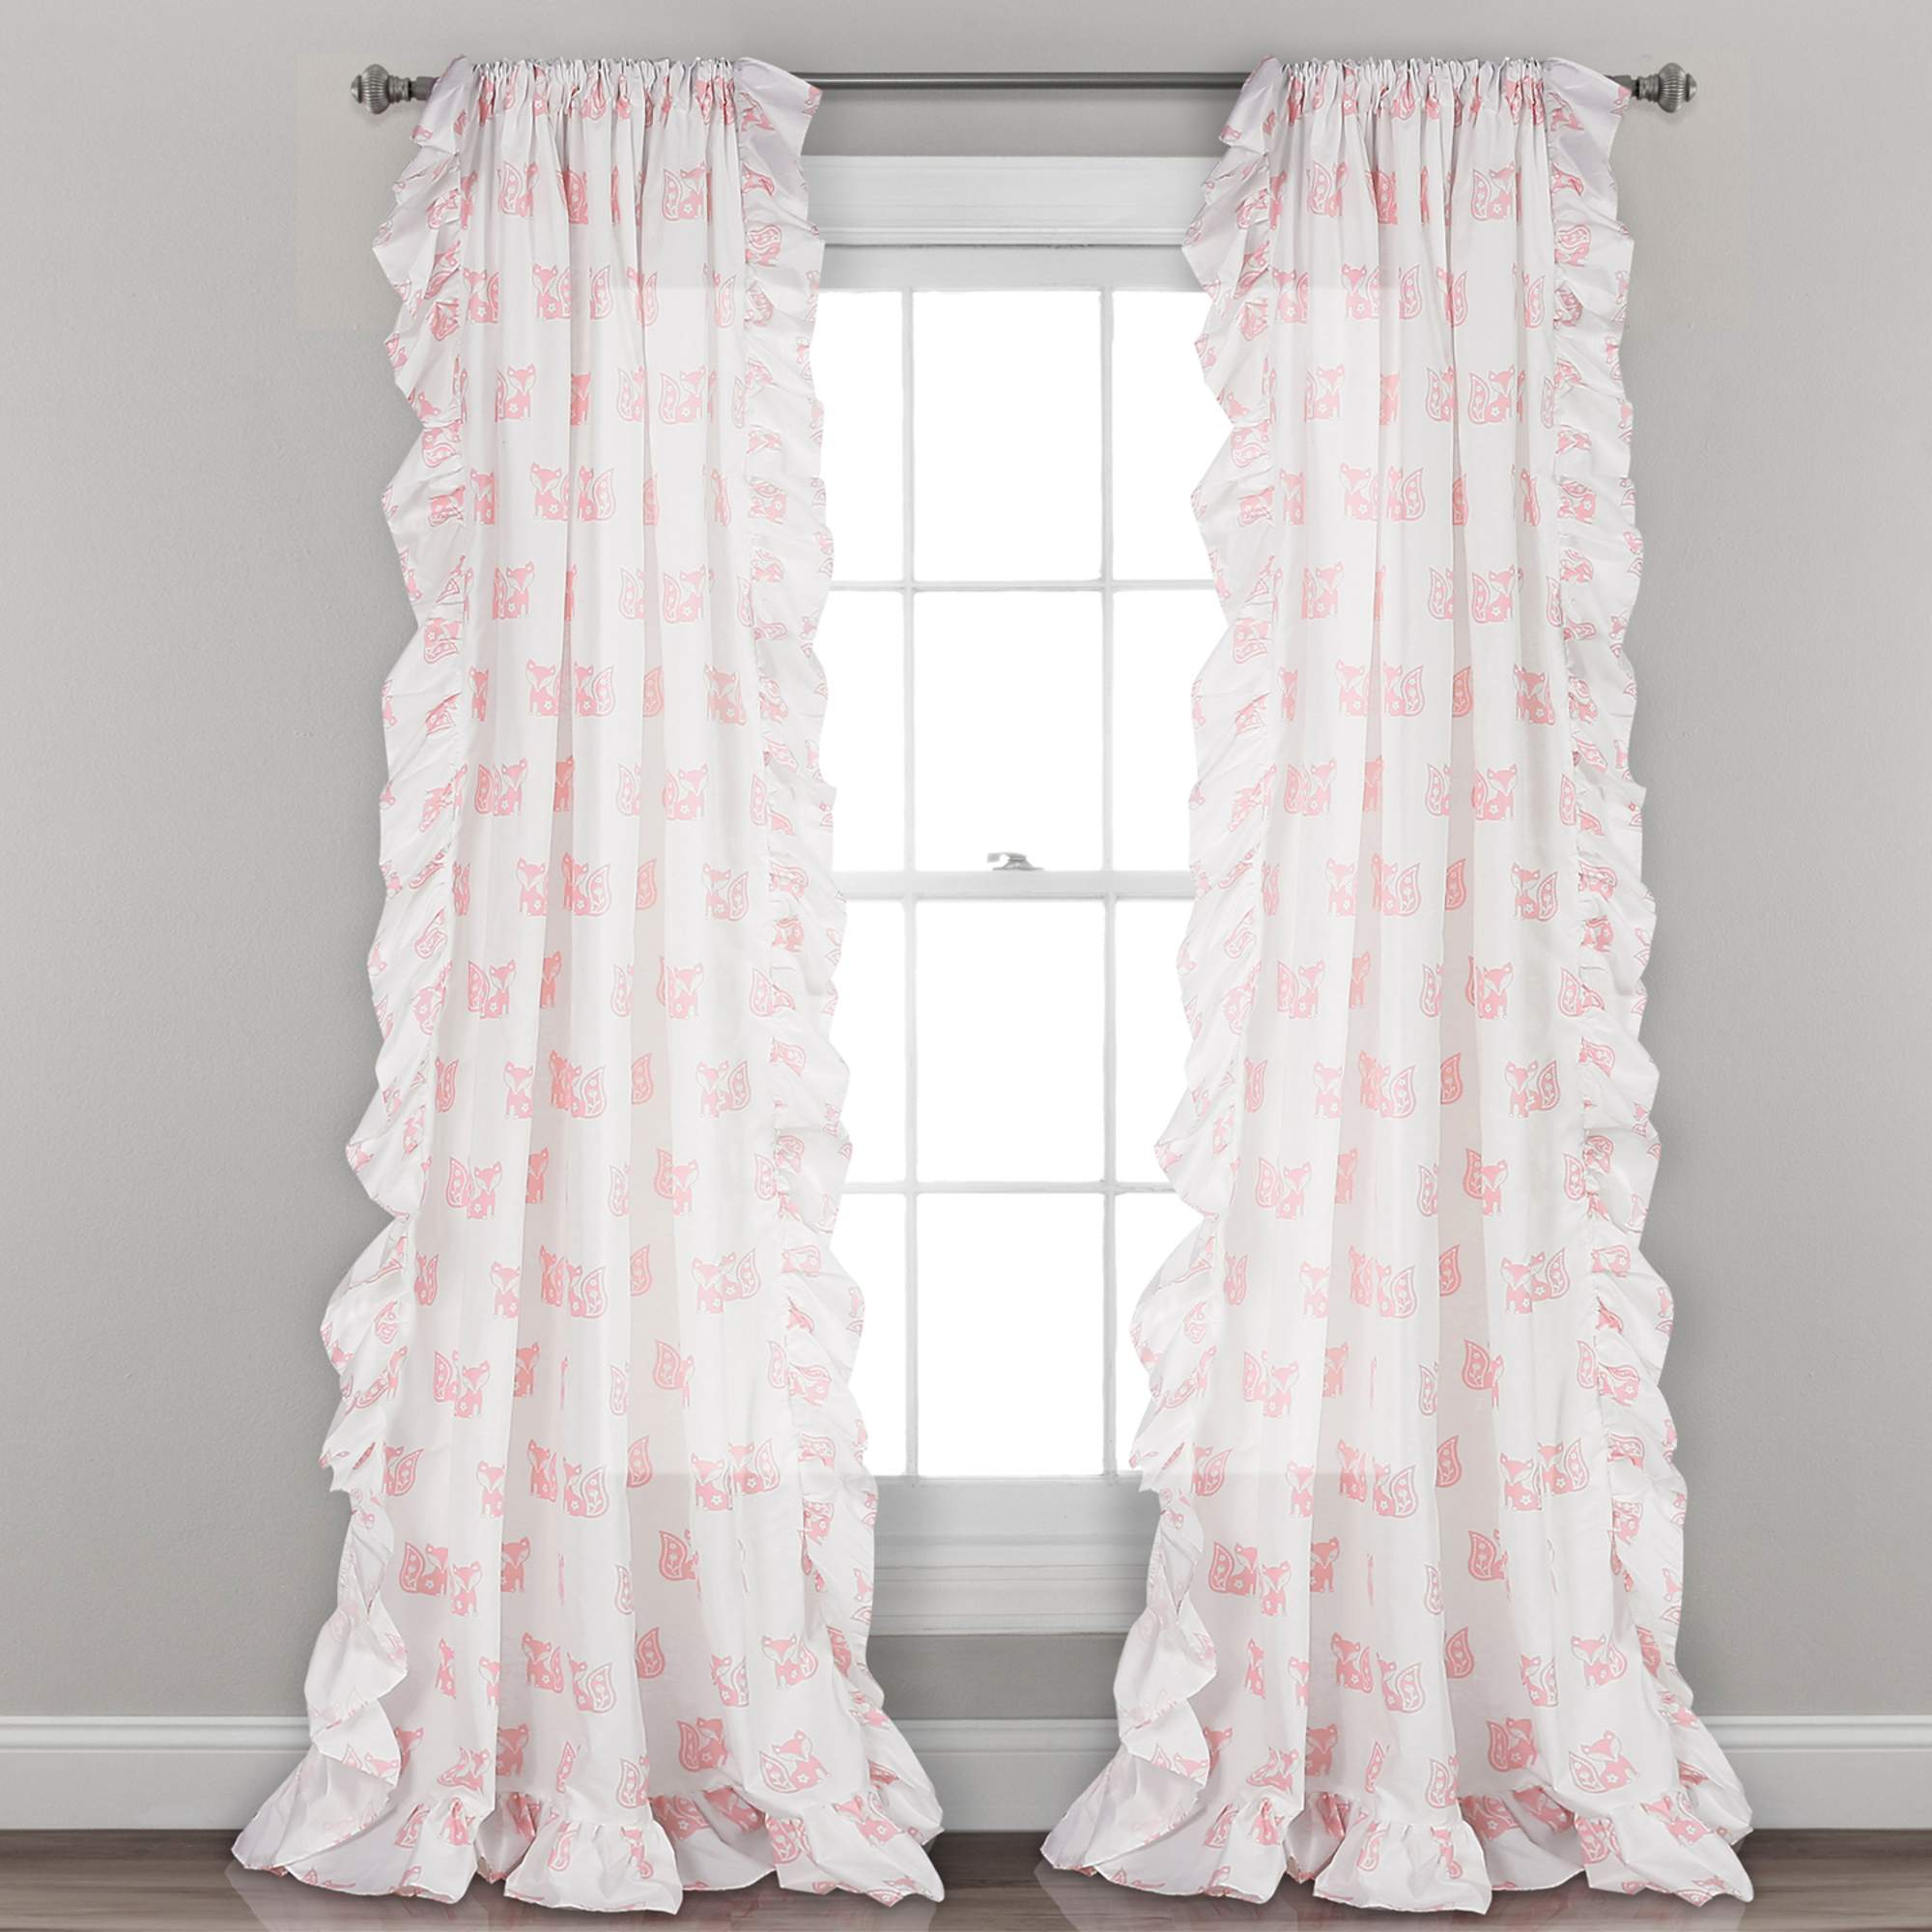 ruffle fox window curtain panels in pink 84 inches in l set of 2 walmart com